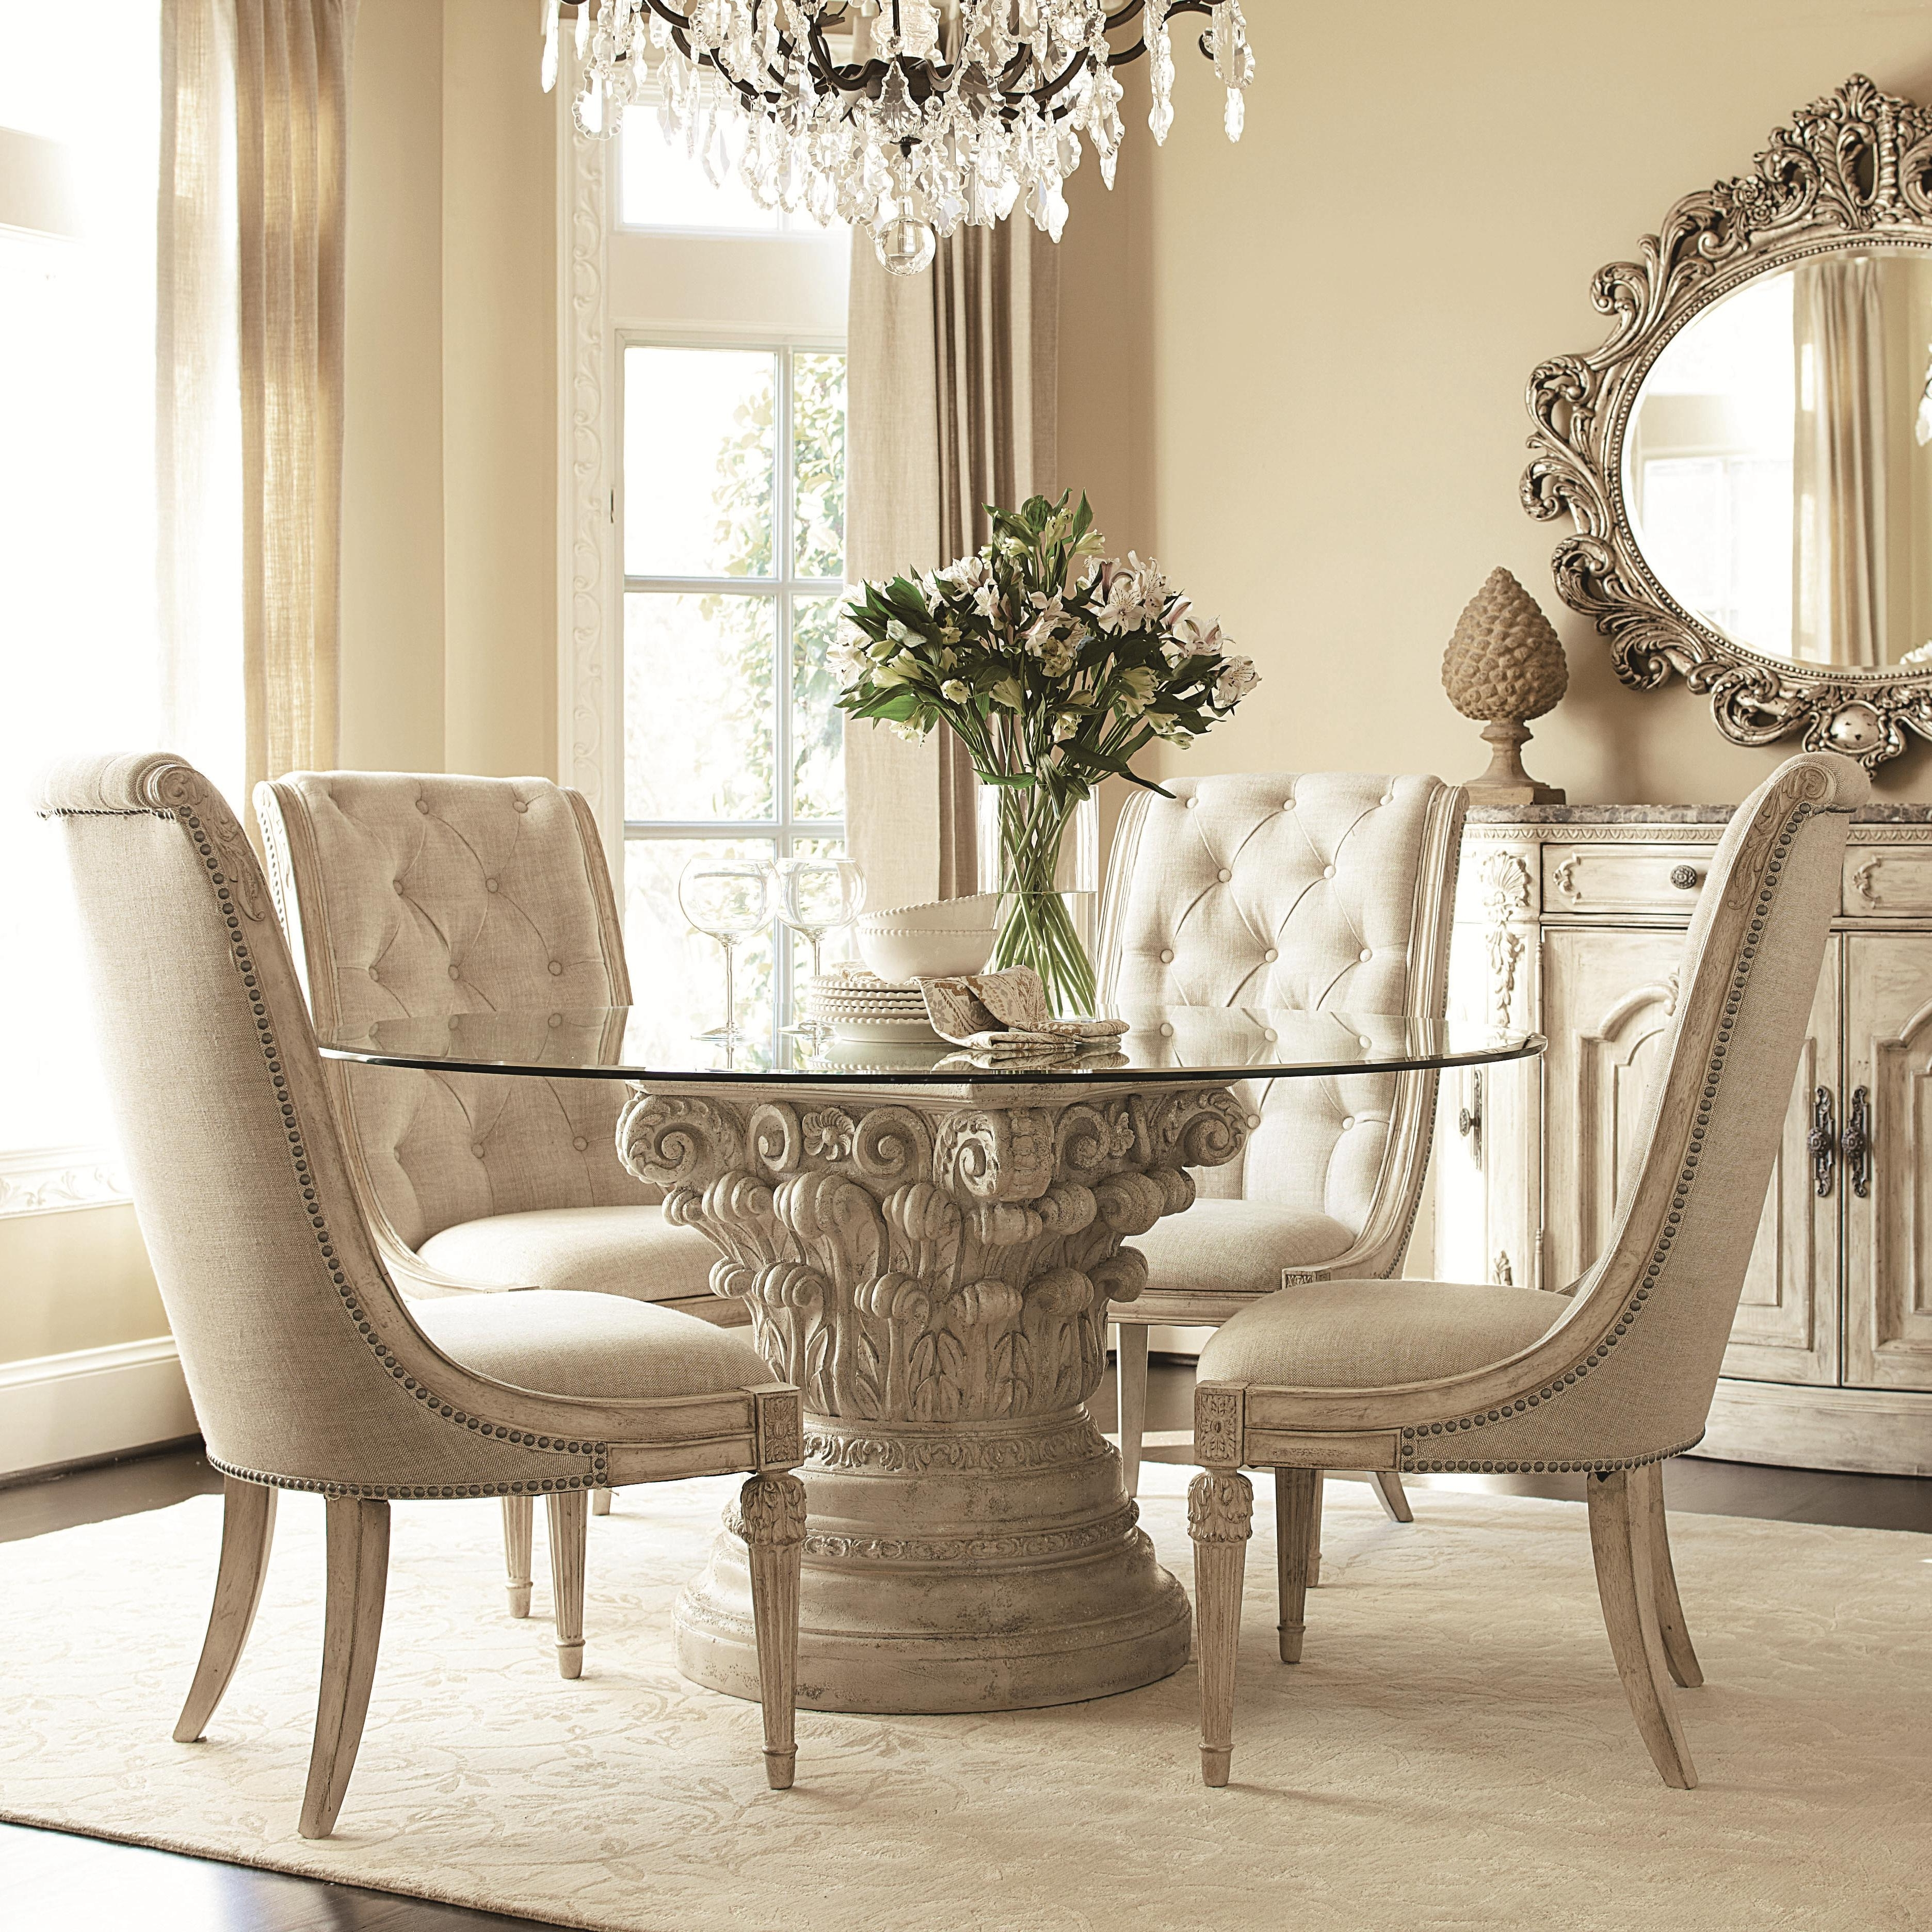 American Drew Jessica Mcclintock Home – The Boutique Collection 5 Intended For Current Jaxon 5 Piece Round Dining Sets With Upholstered Chairs (View 3 of 25)